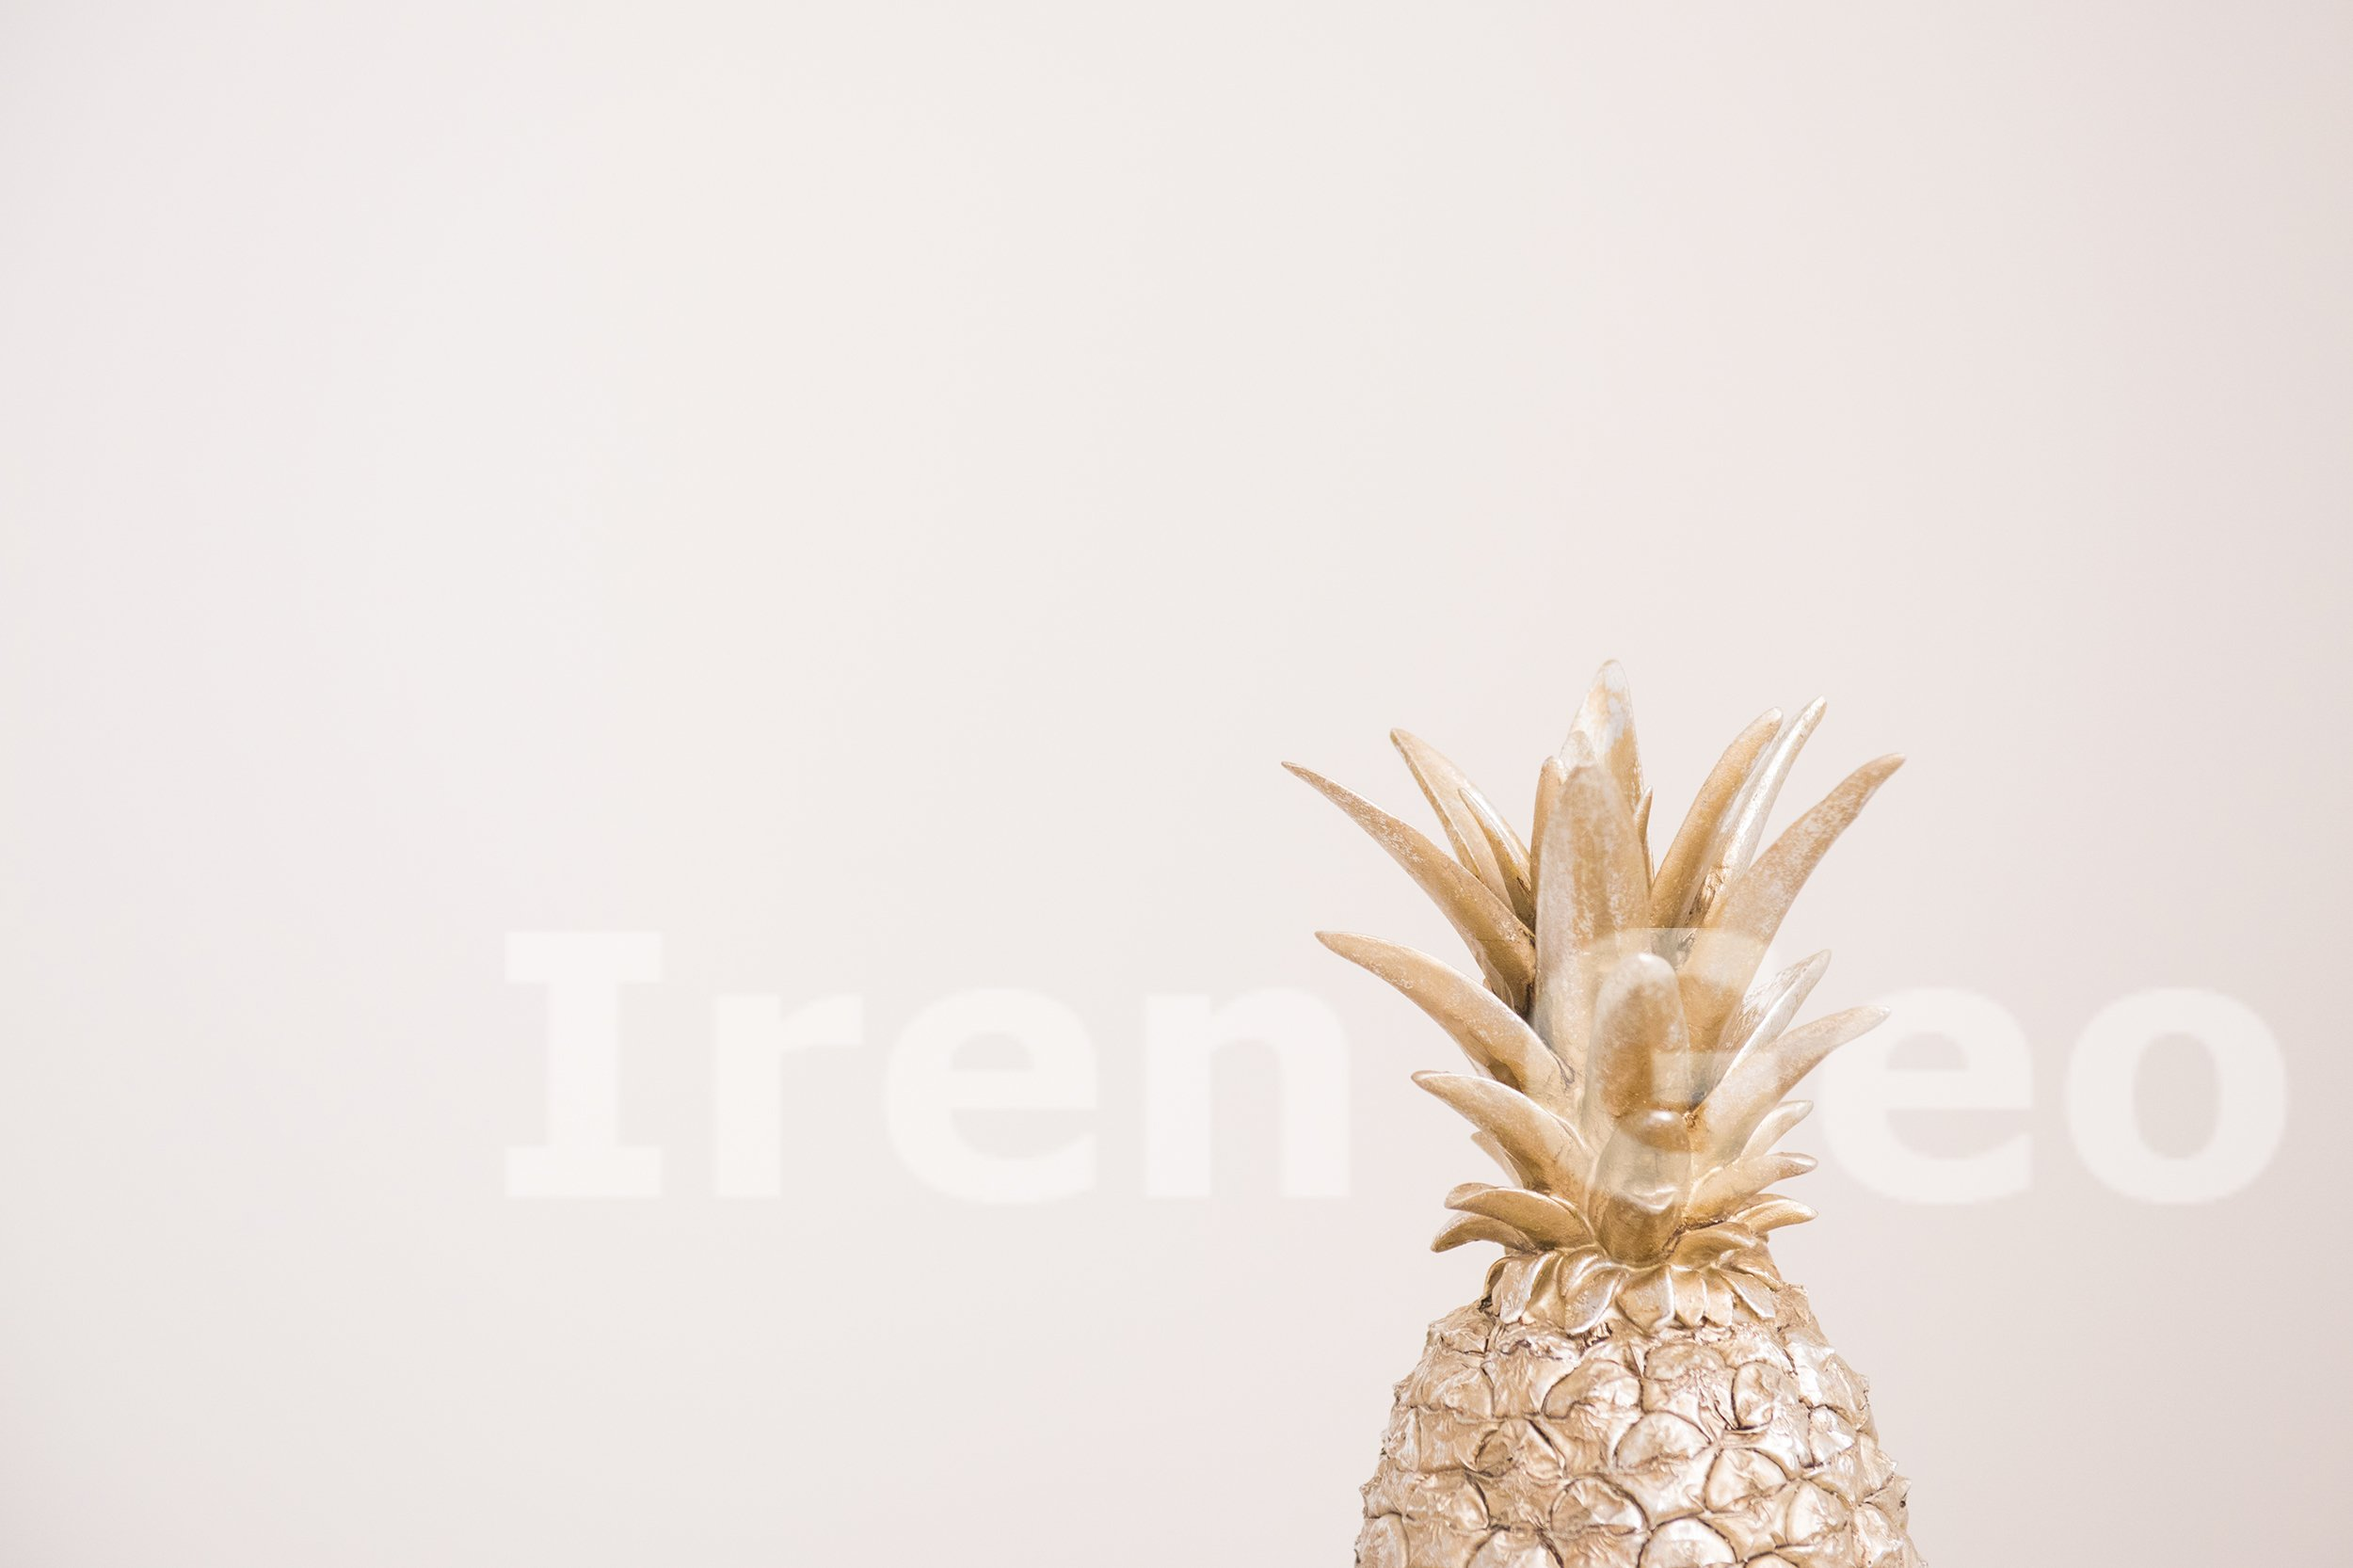 Decorative pineapple on gray background. Copy space example image 1